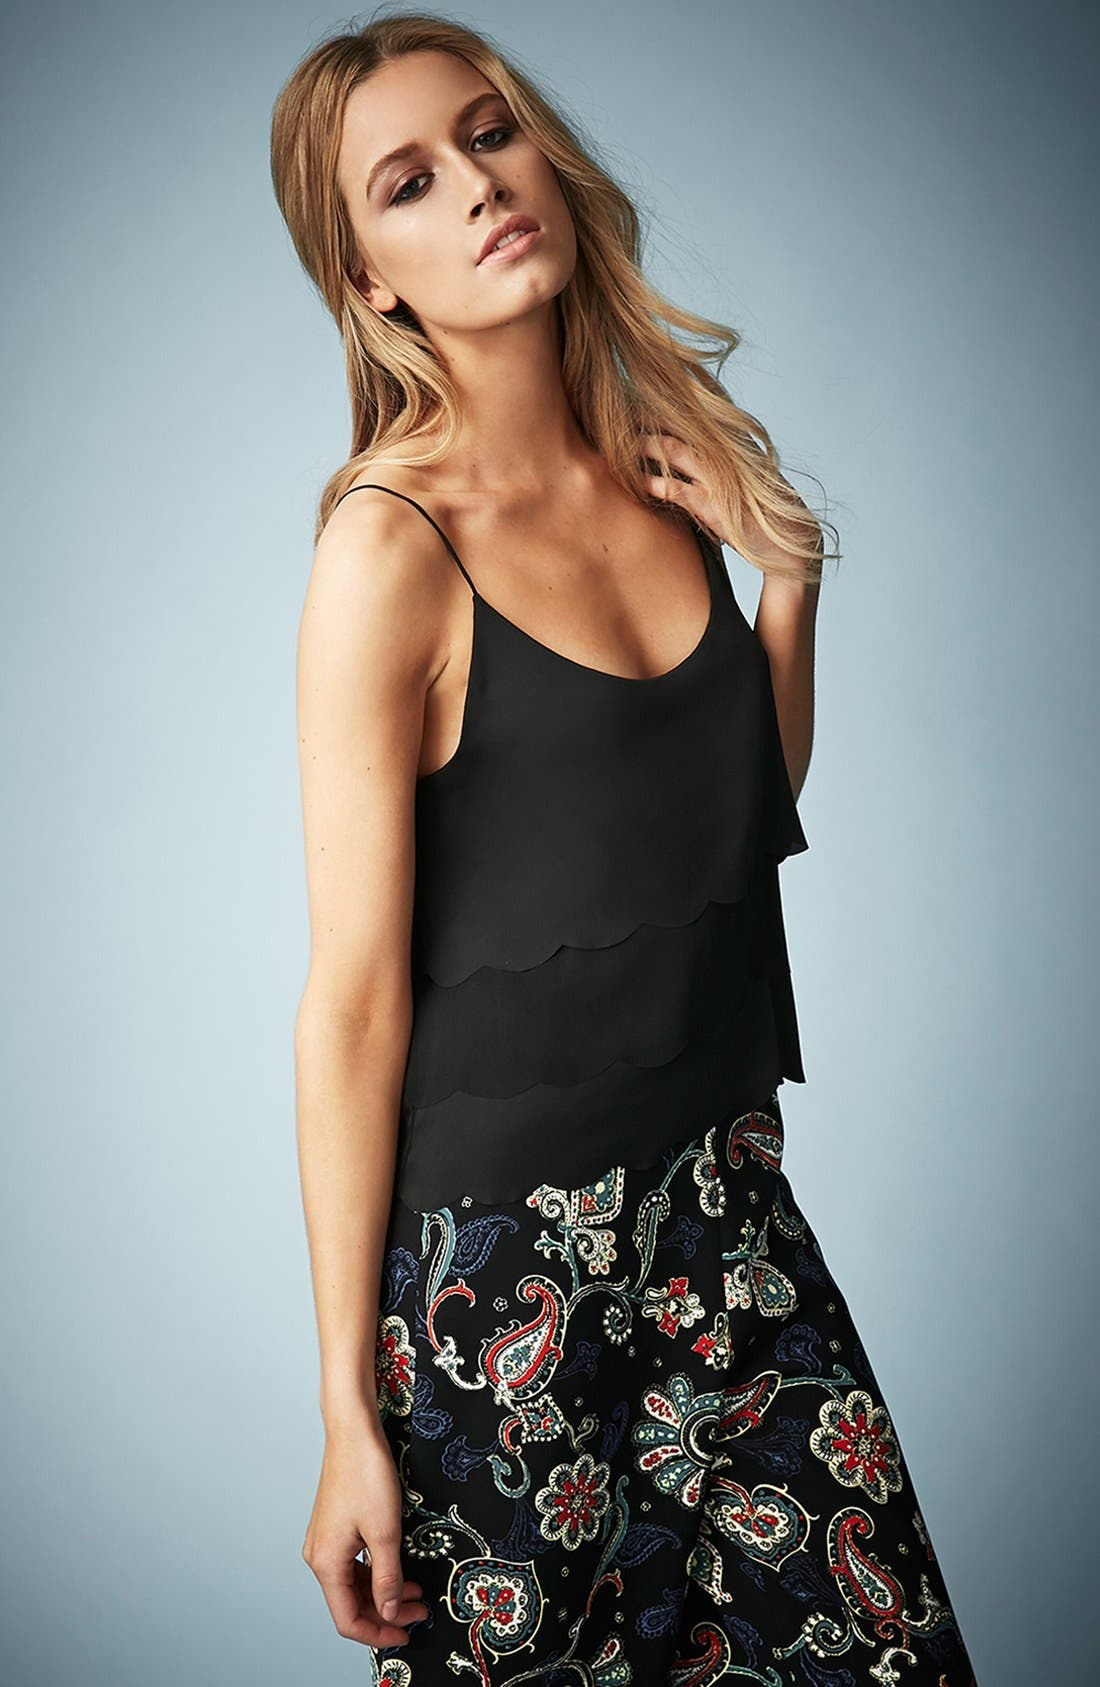 Alternate Image 1 Selected - Kate Moss for Topshop Scalloped Camisole (Online Only)